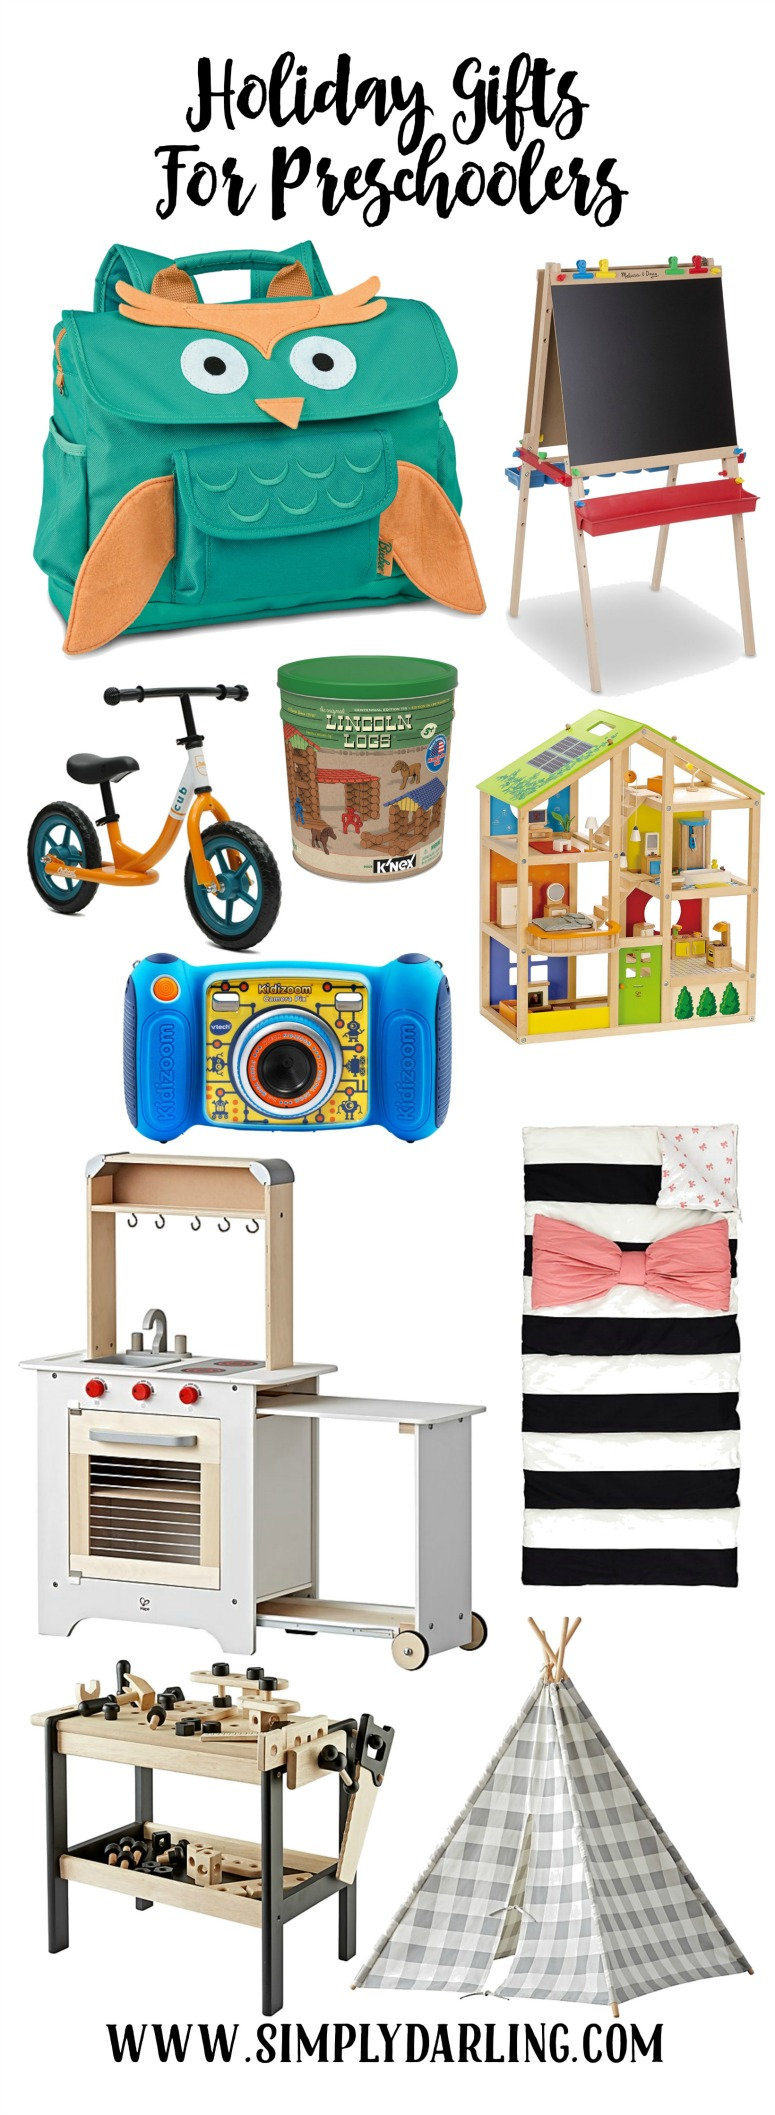 Holiday Gift Ideas for Preschoolers